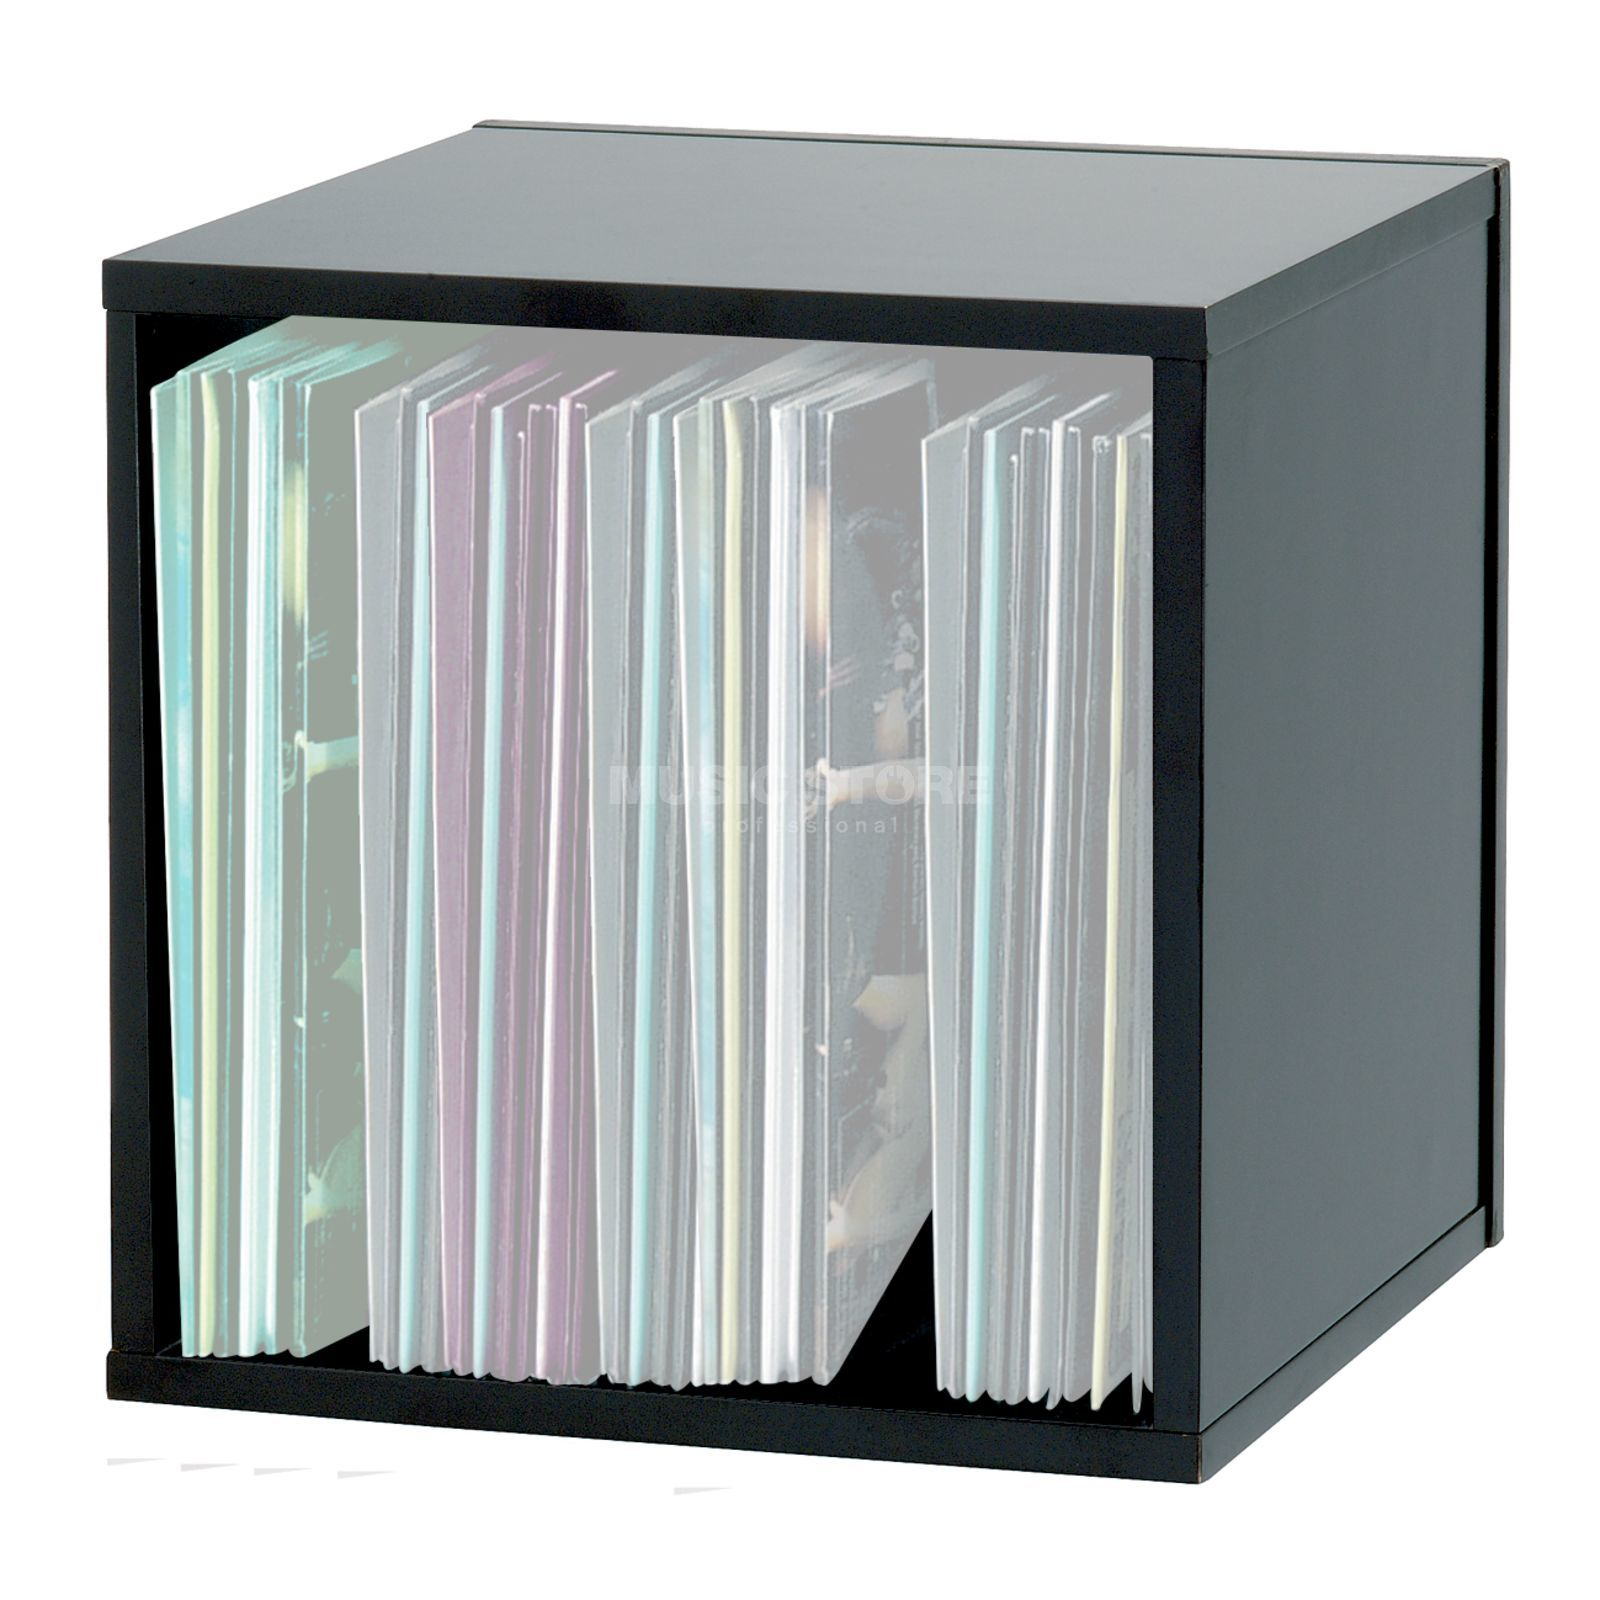 Glorious Record Box 110 Black MDF Record Box, 110 Capacity Immagine prodotto